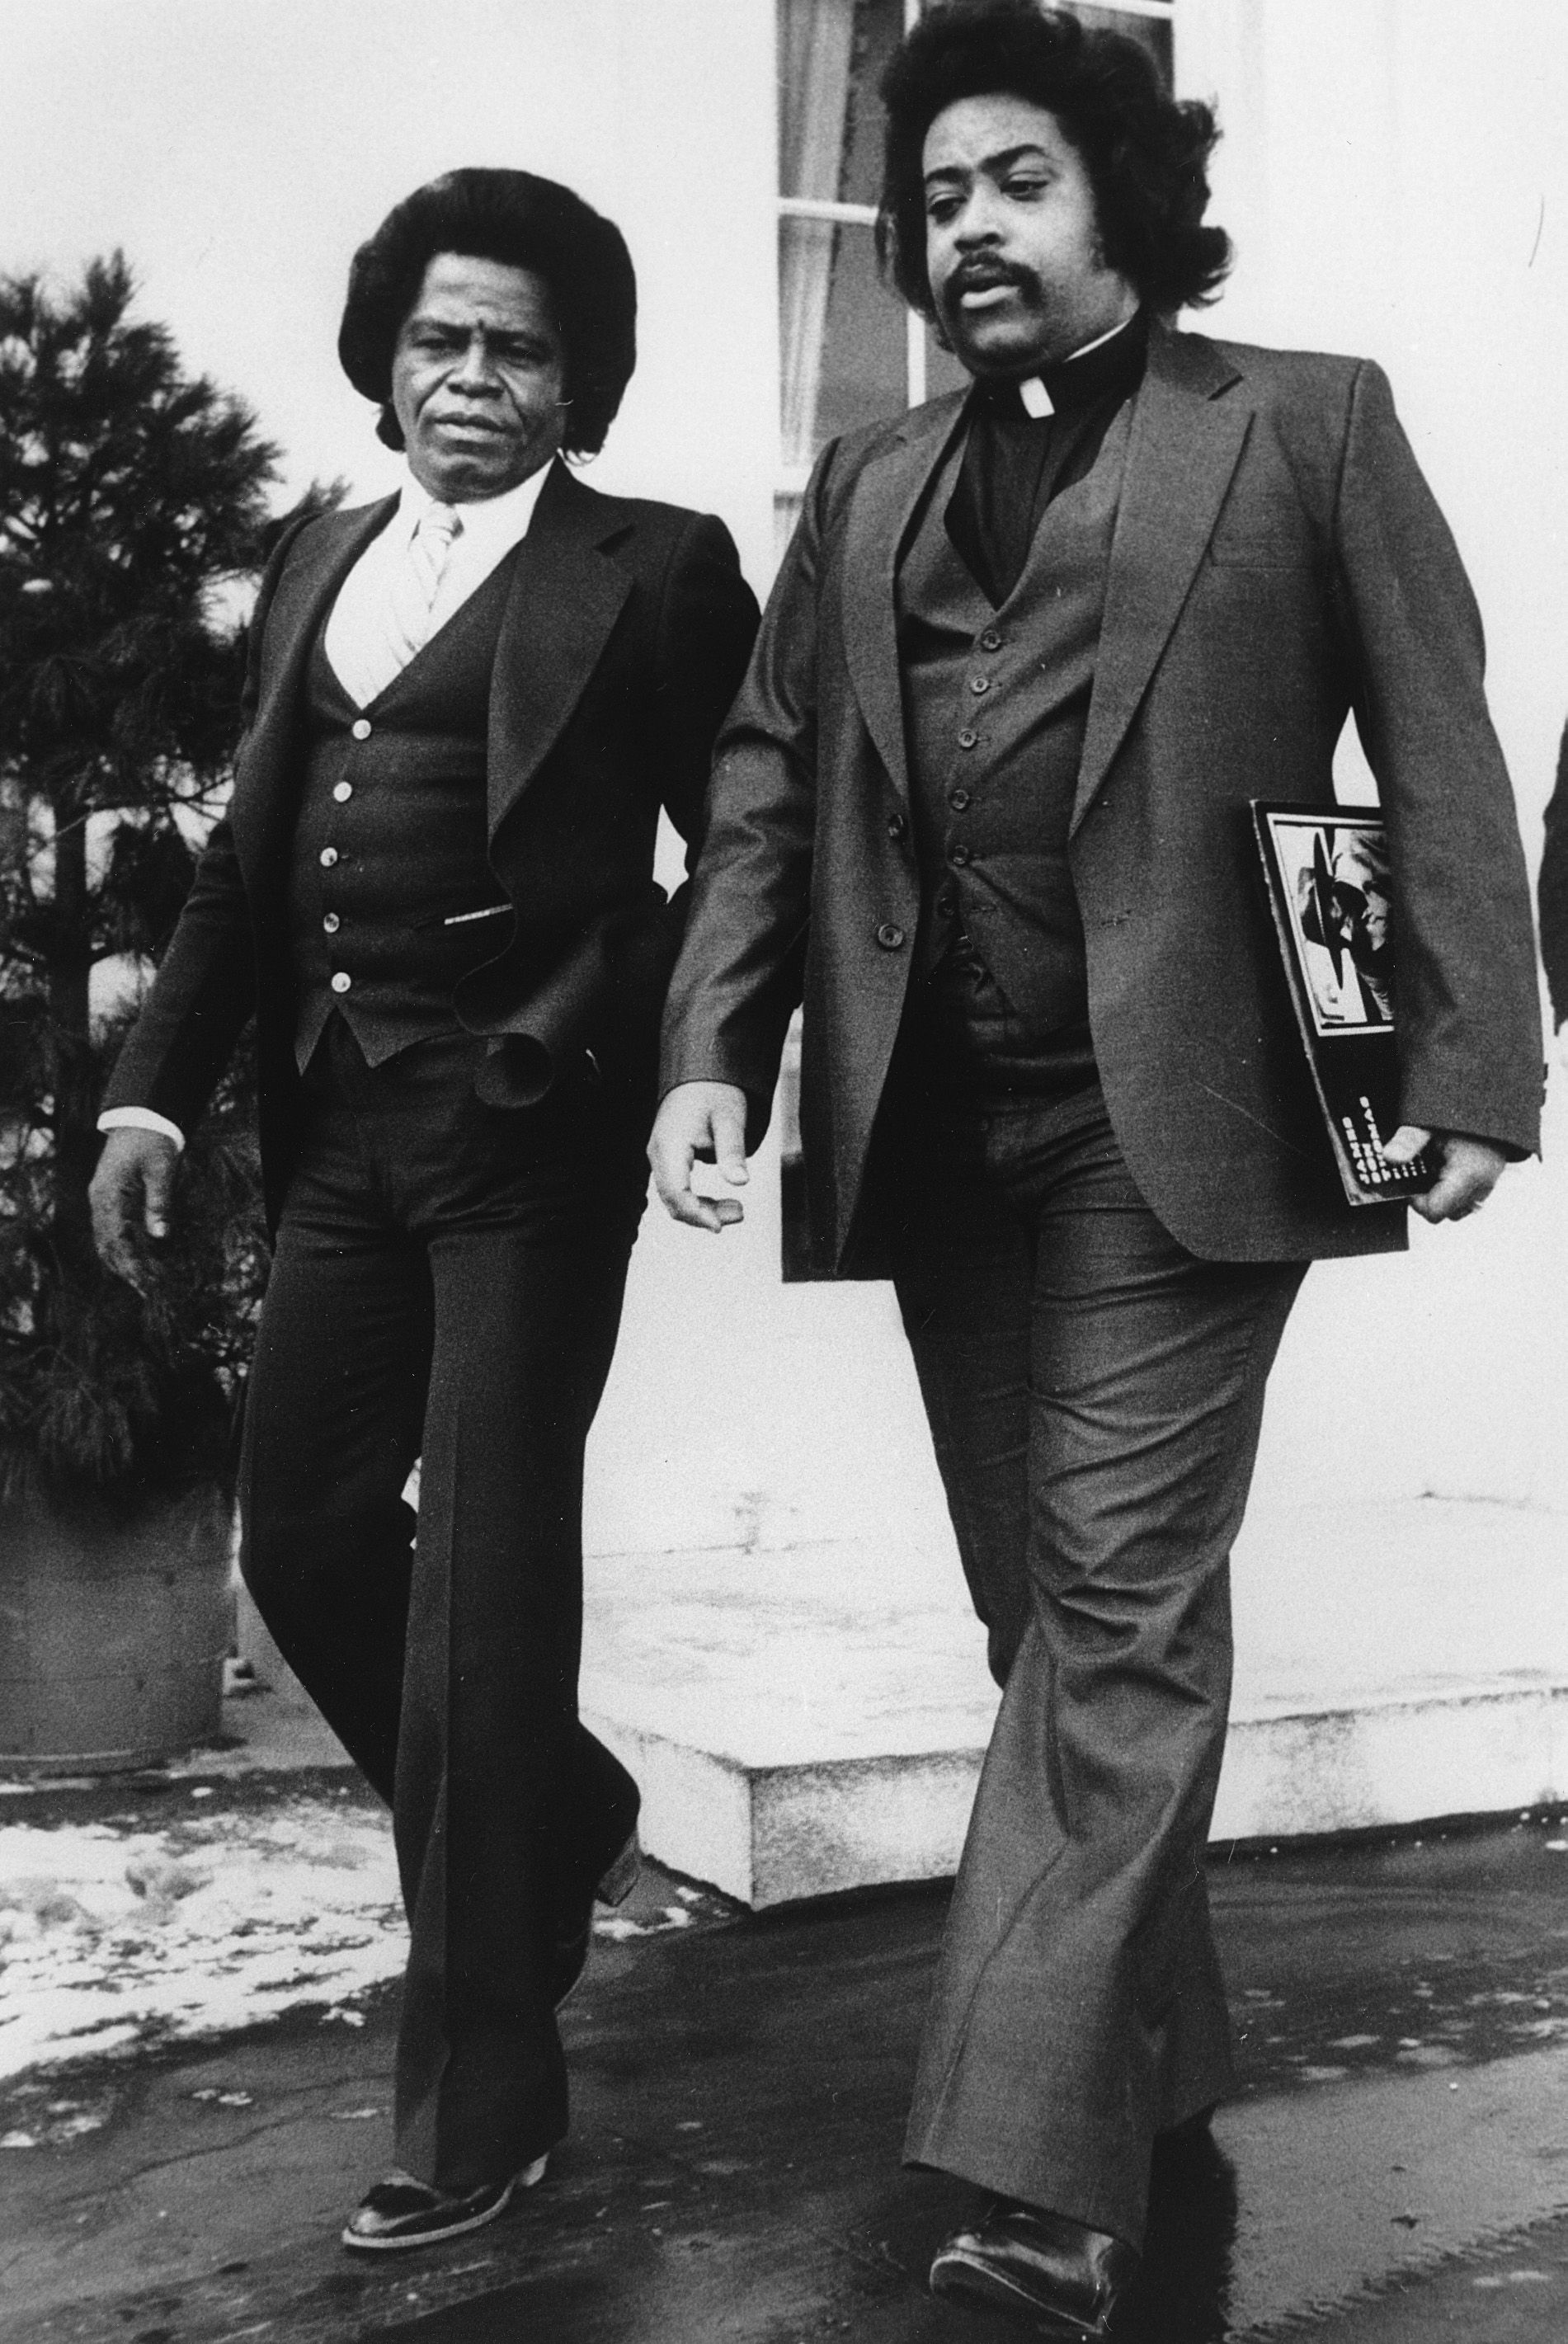 Reverend Al escorts the Godfather of Soul from the White House